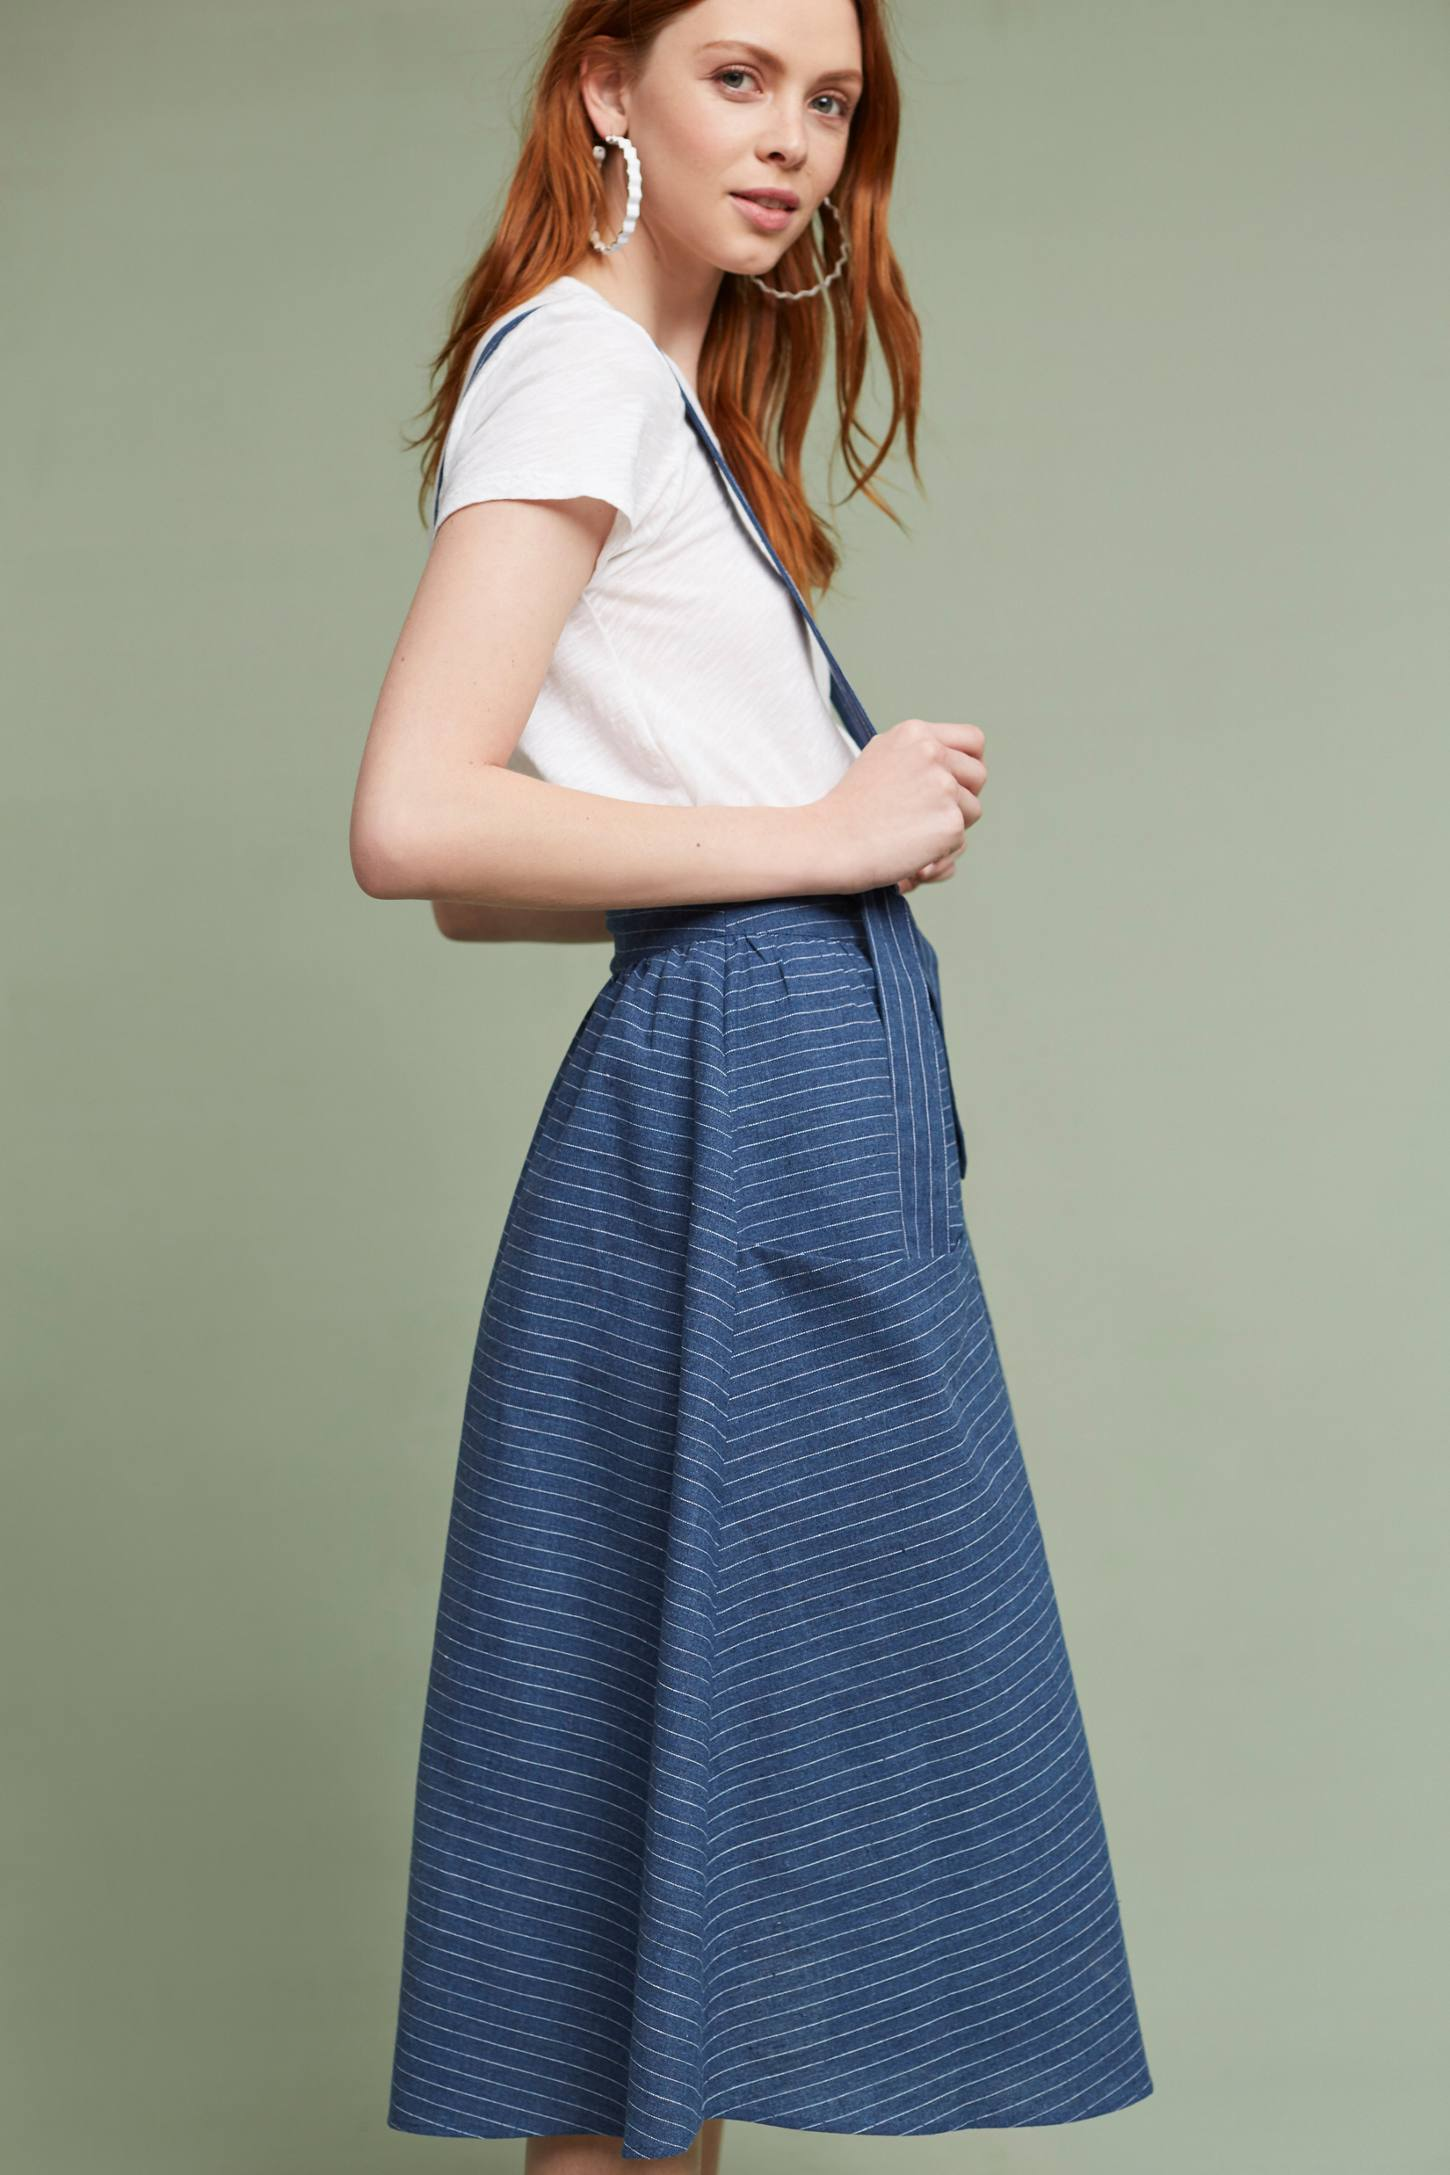 Slide View: 2: Regina Suspender Skirt, Blue